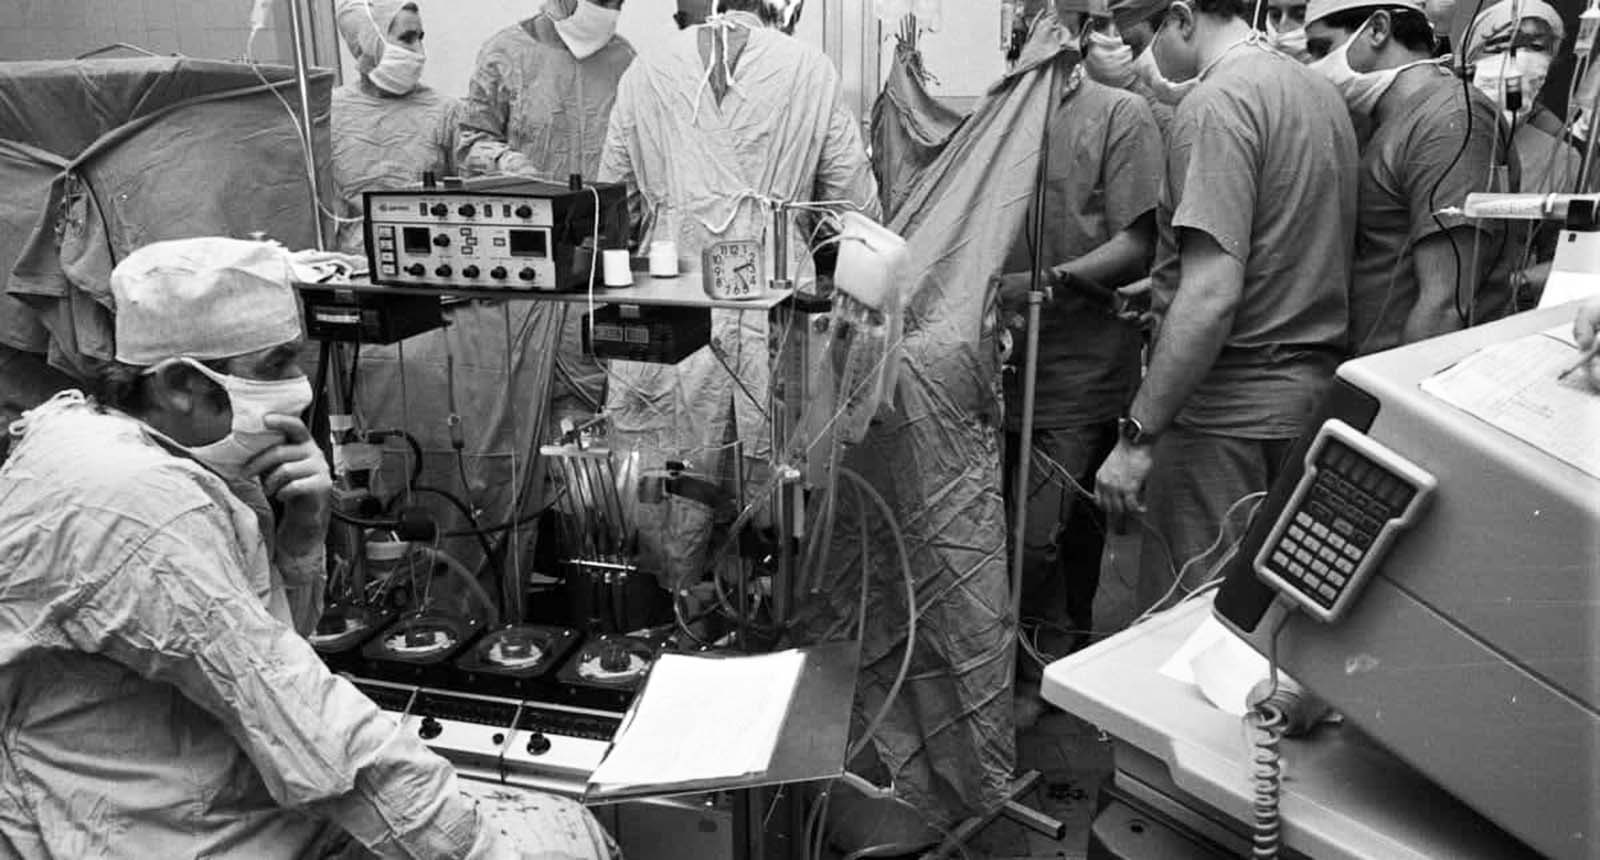 Zbigniew Religa and his team during the heart operation. The donor was in a coma, and after verification of brain death, the organs were transferred from Warsaw to Zabrze.